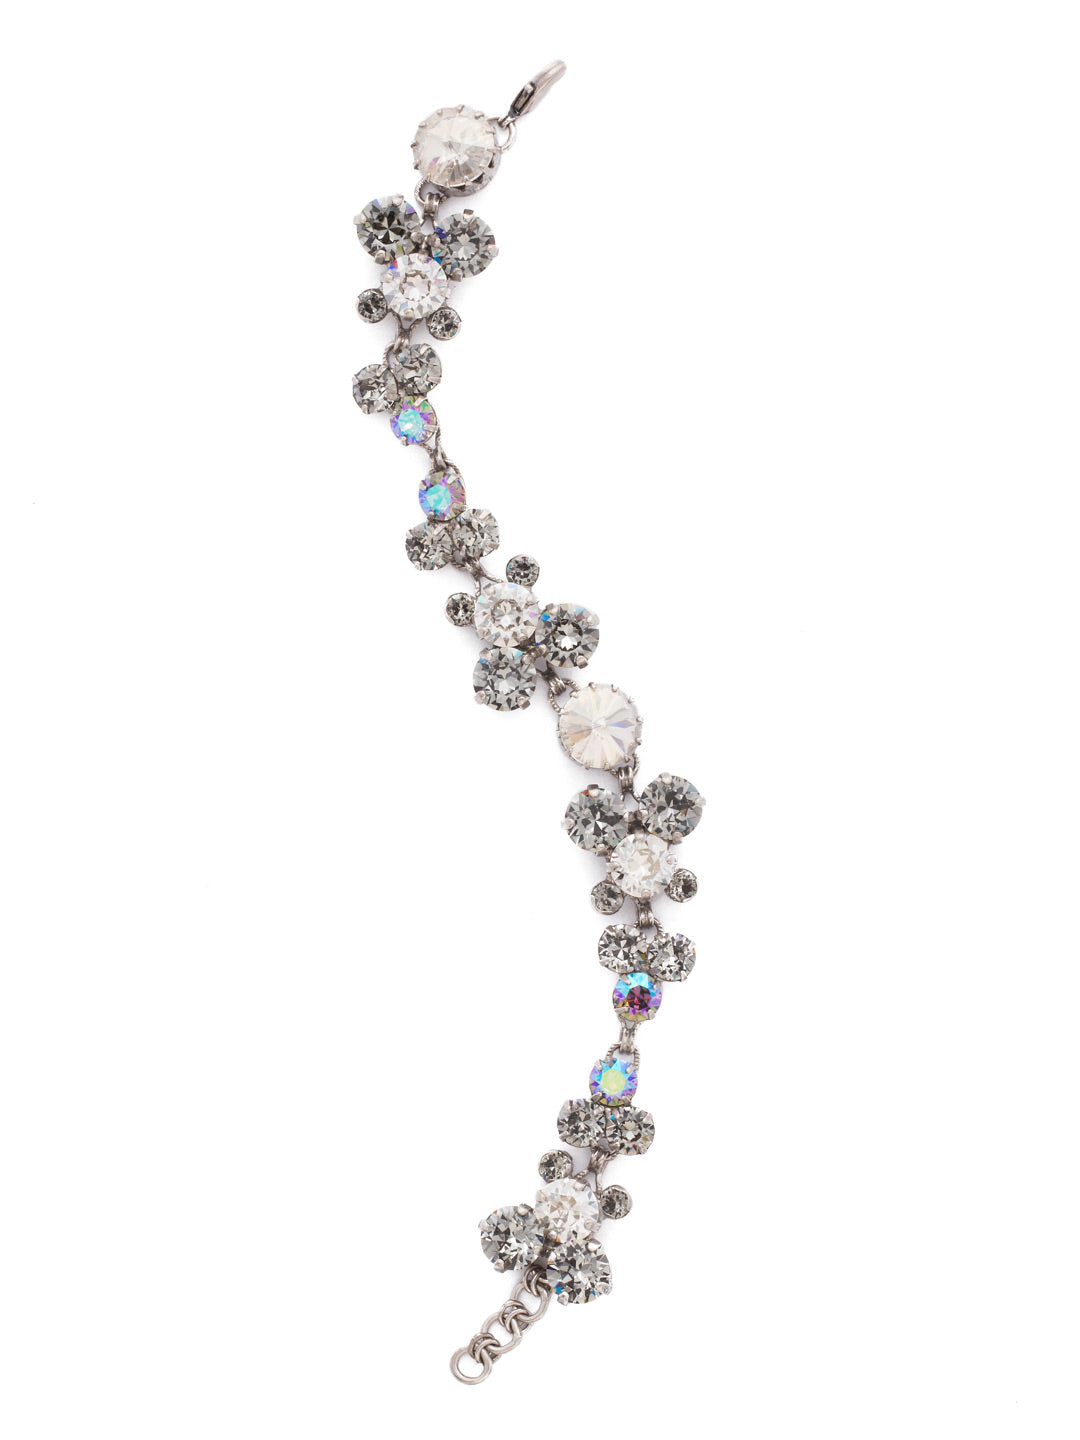 Well-Rounded Tennis Bracelet - BDH24ASCRO